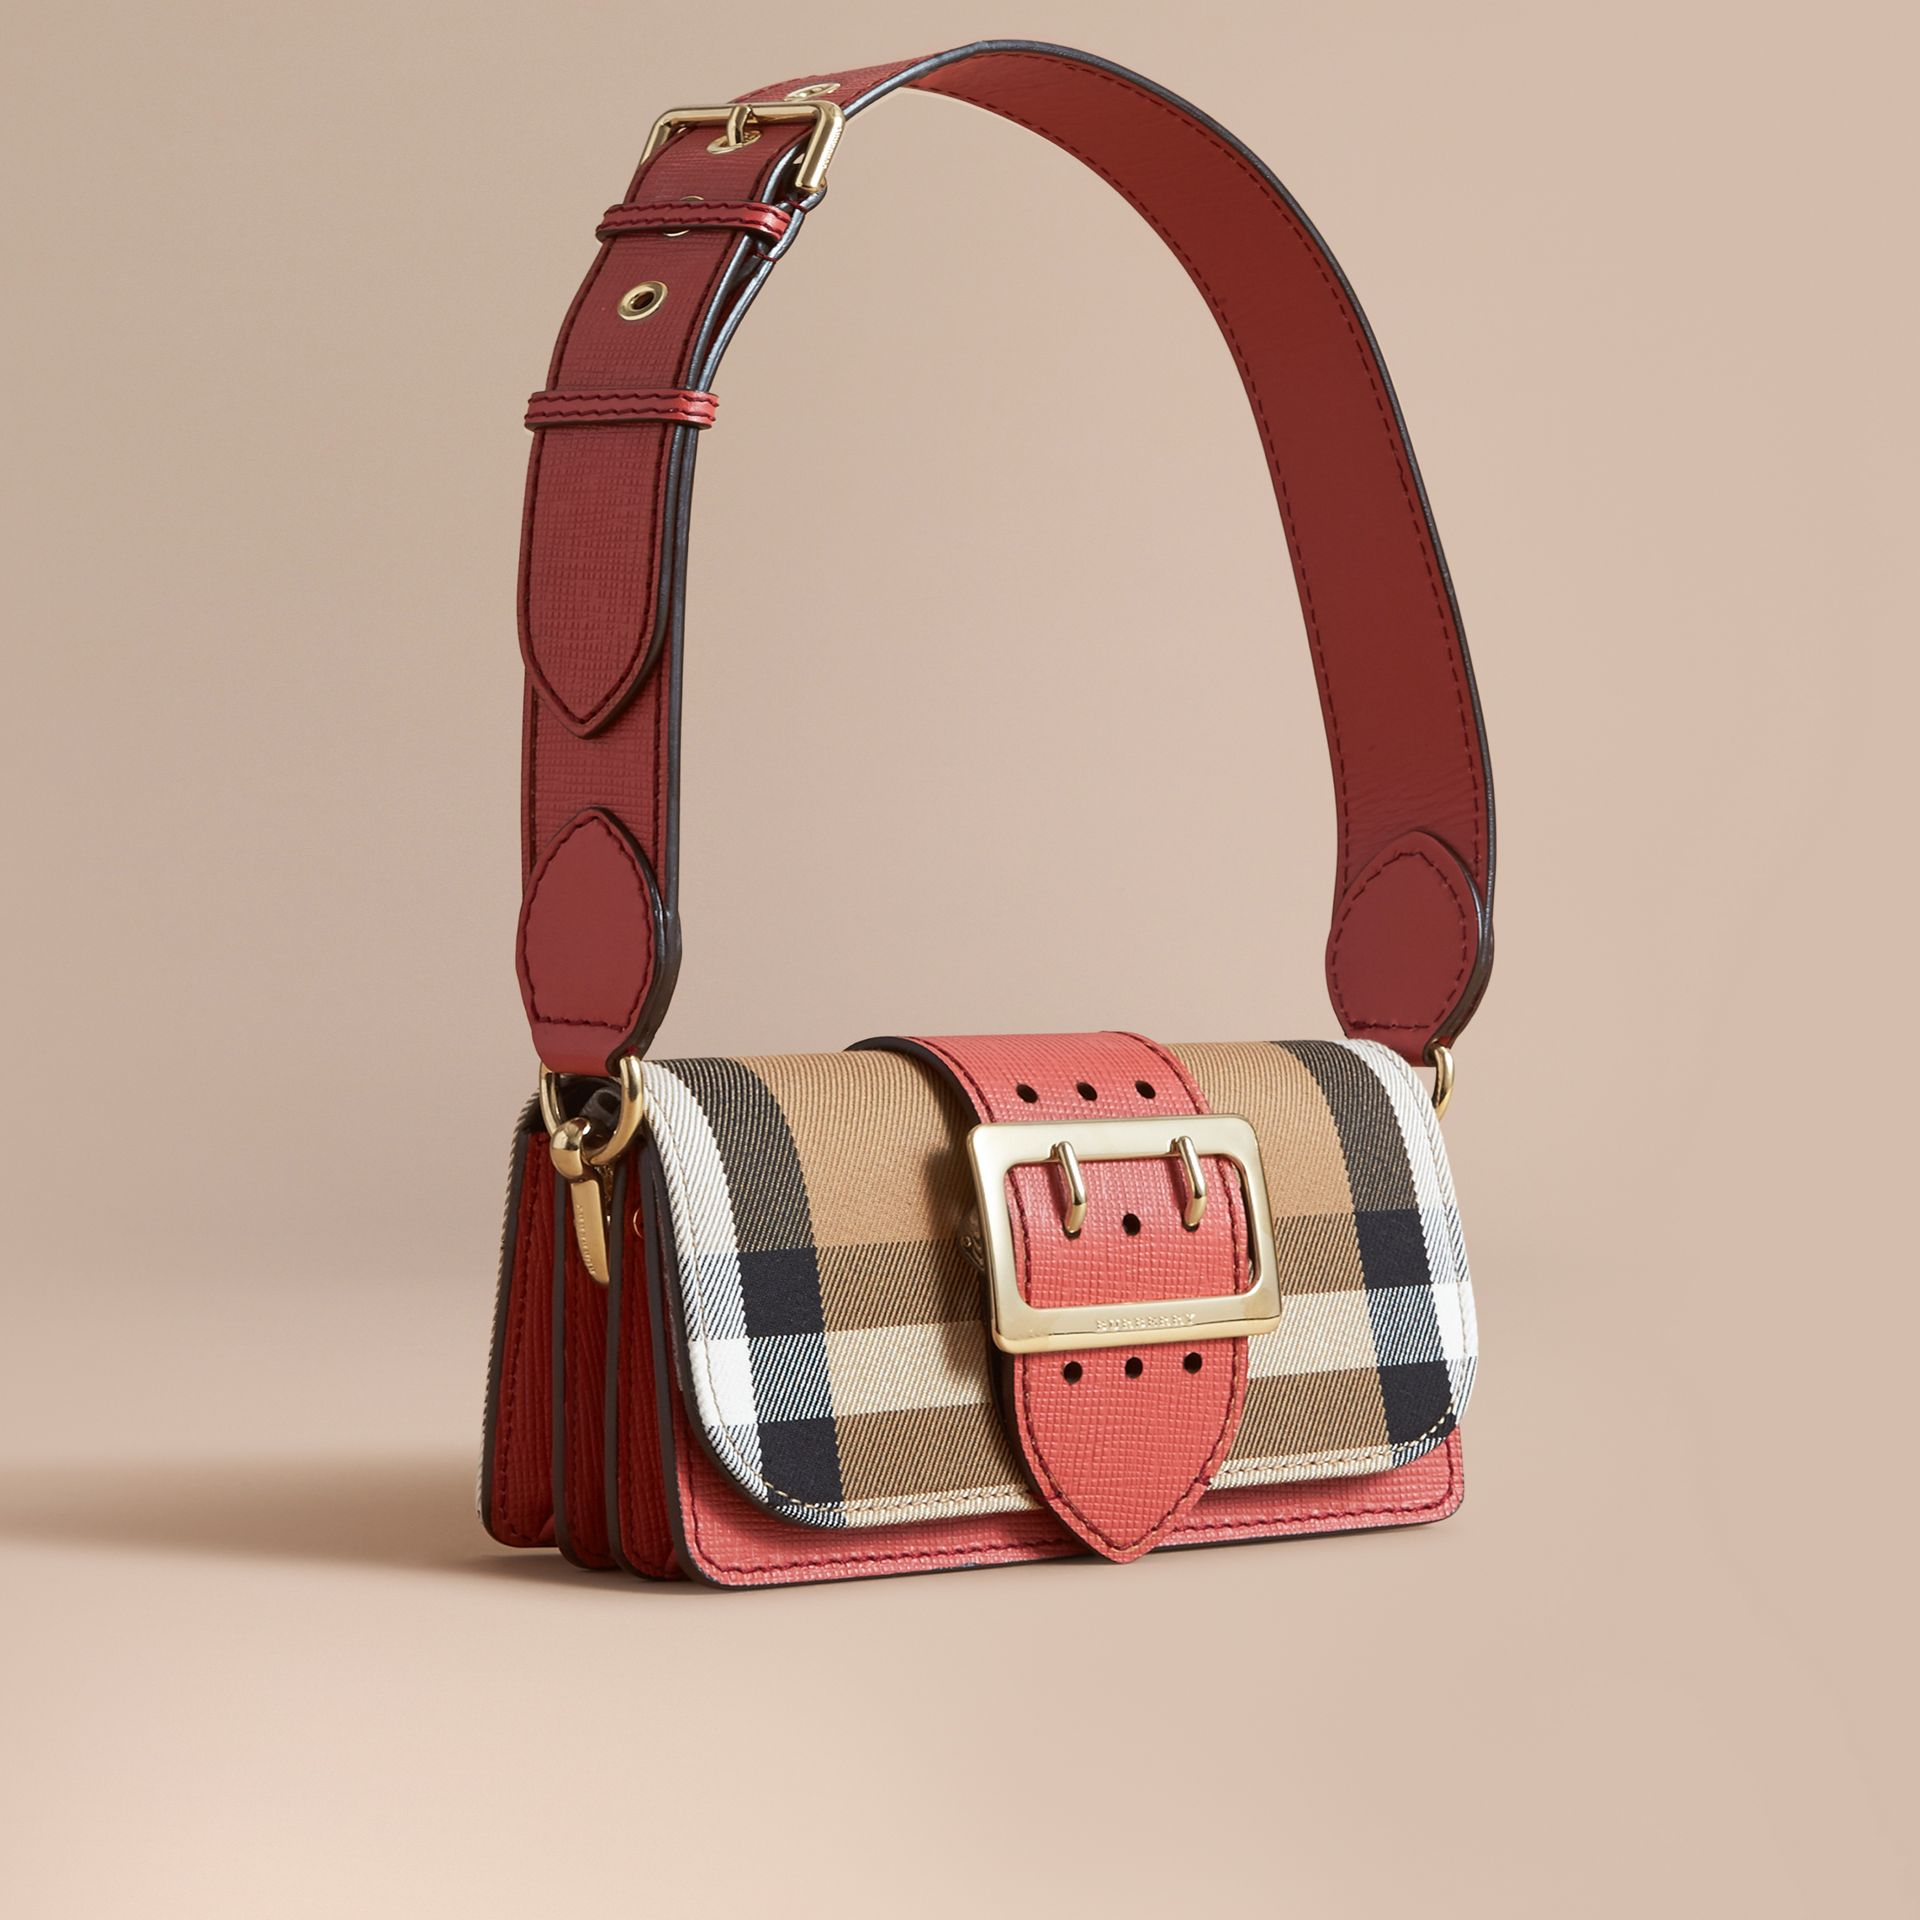 The Small Buckle Bag in House Check and Leather in Cinnamon Red - Women | Burberry - gallery image 0